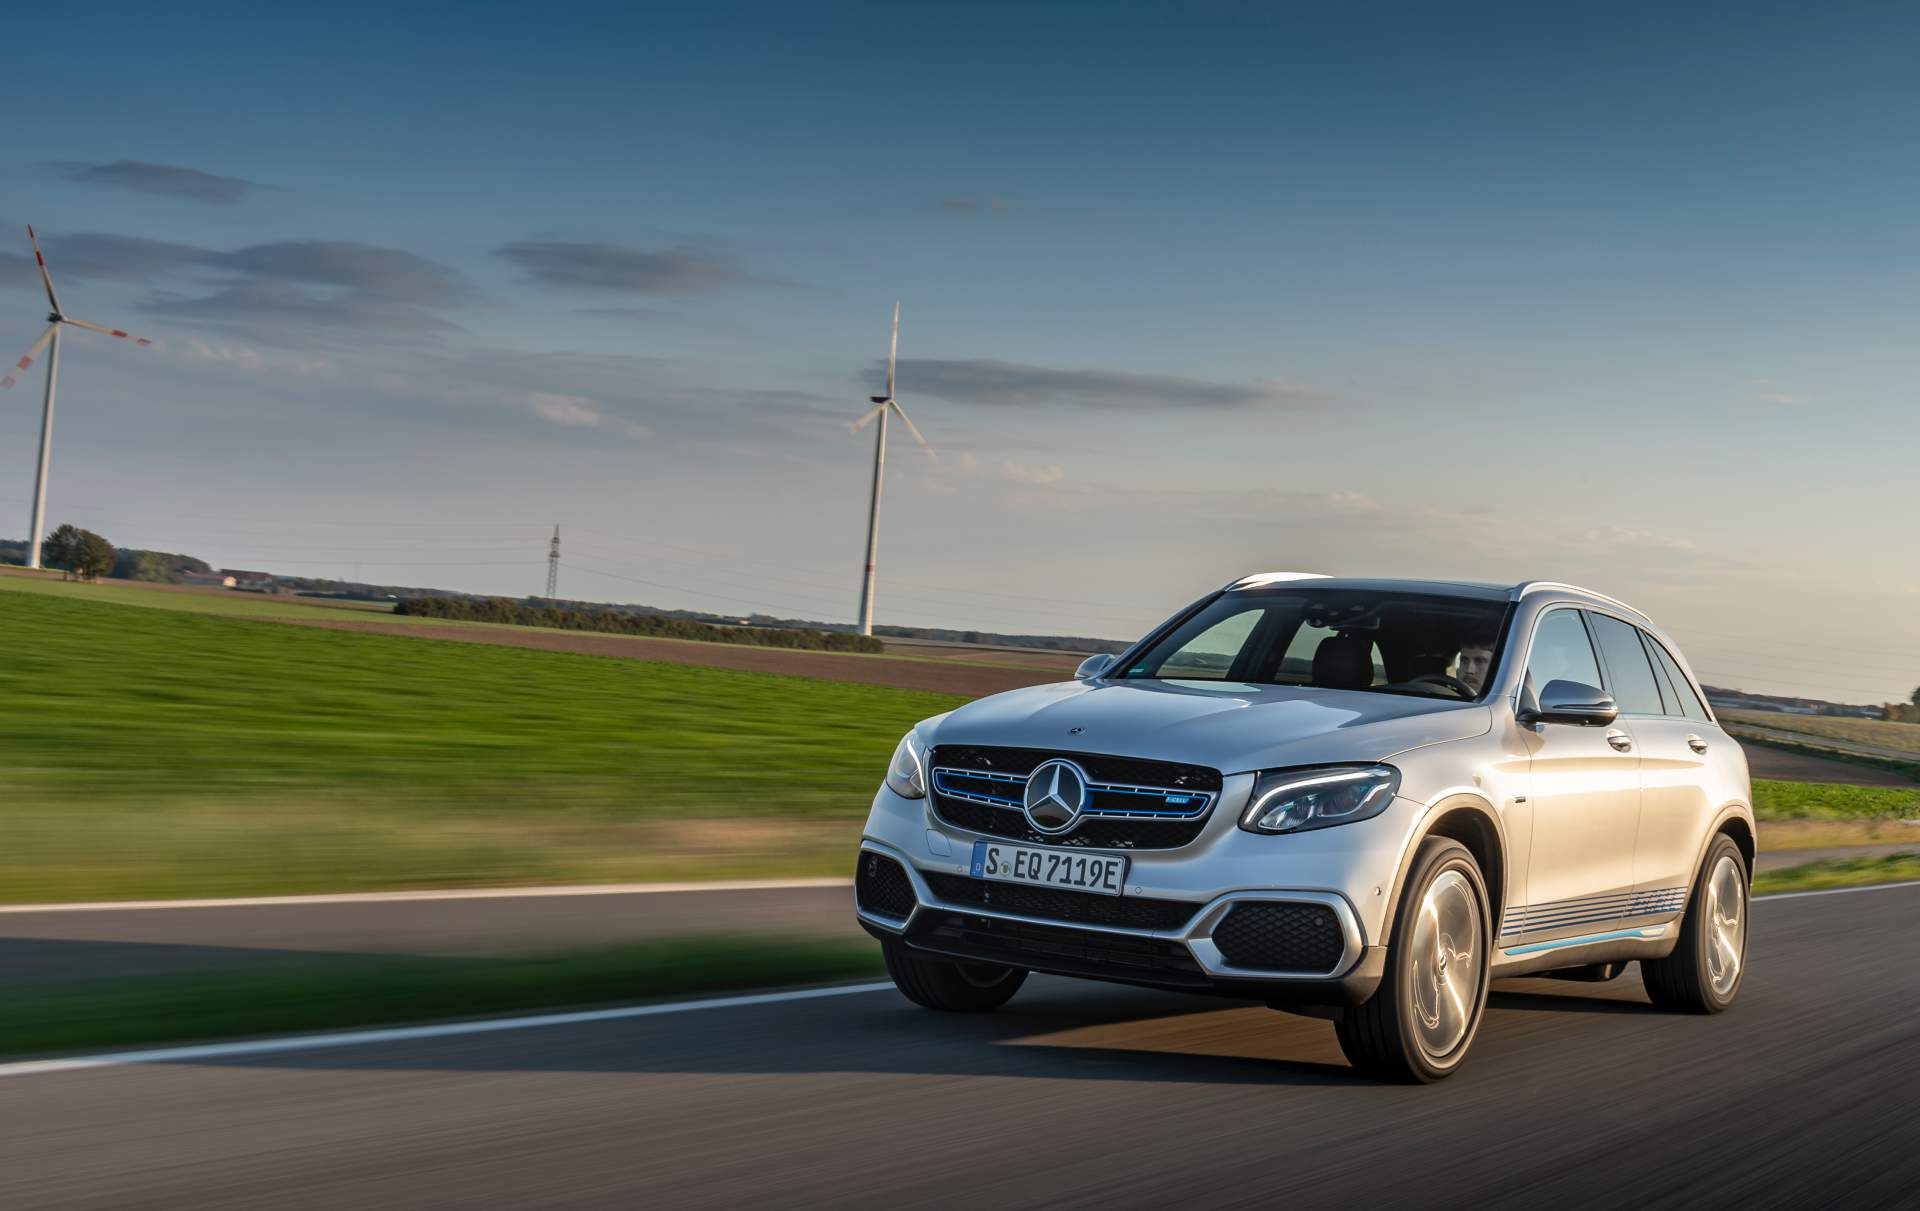 2019_Mercedes_GLC_F-Cell_0050